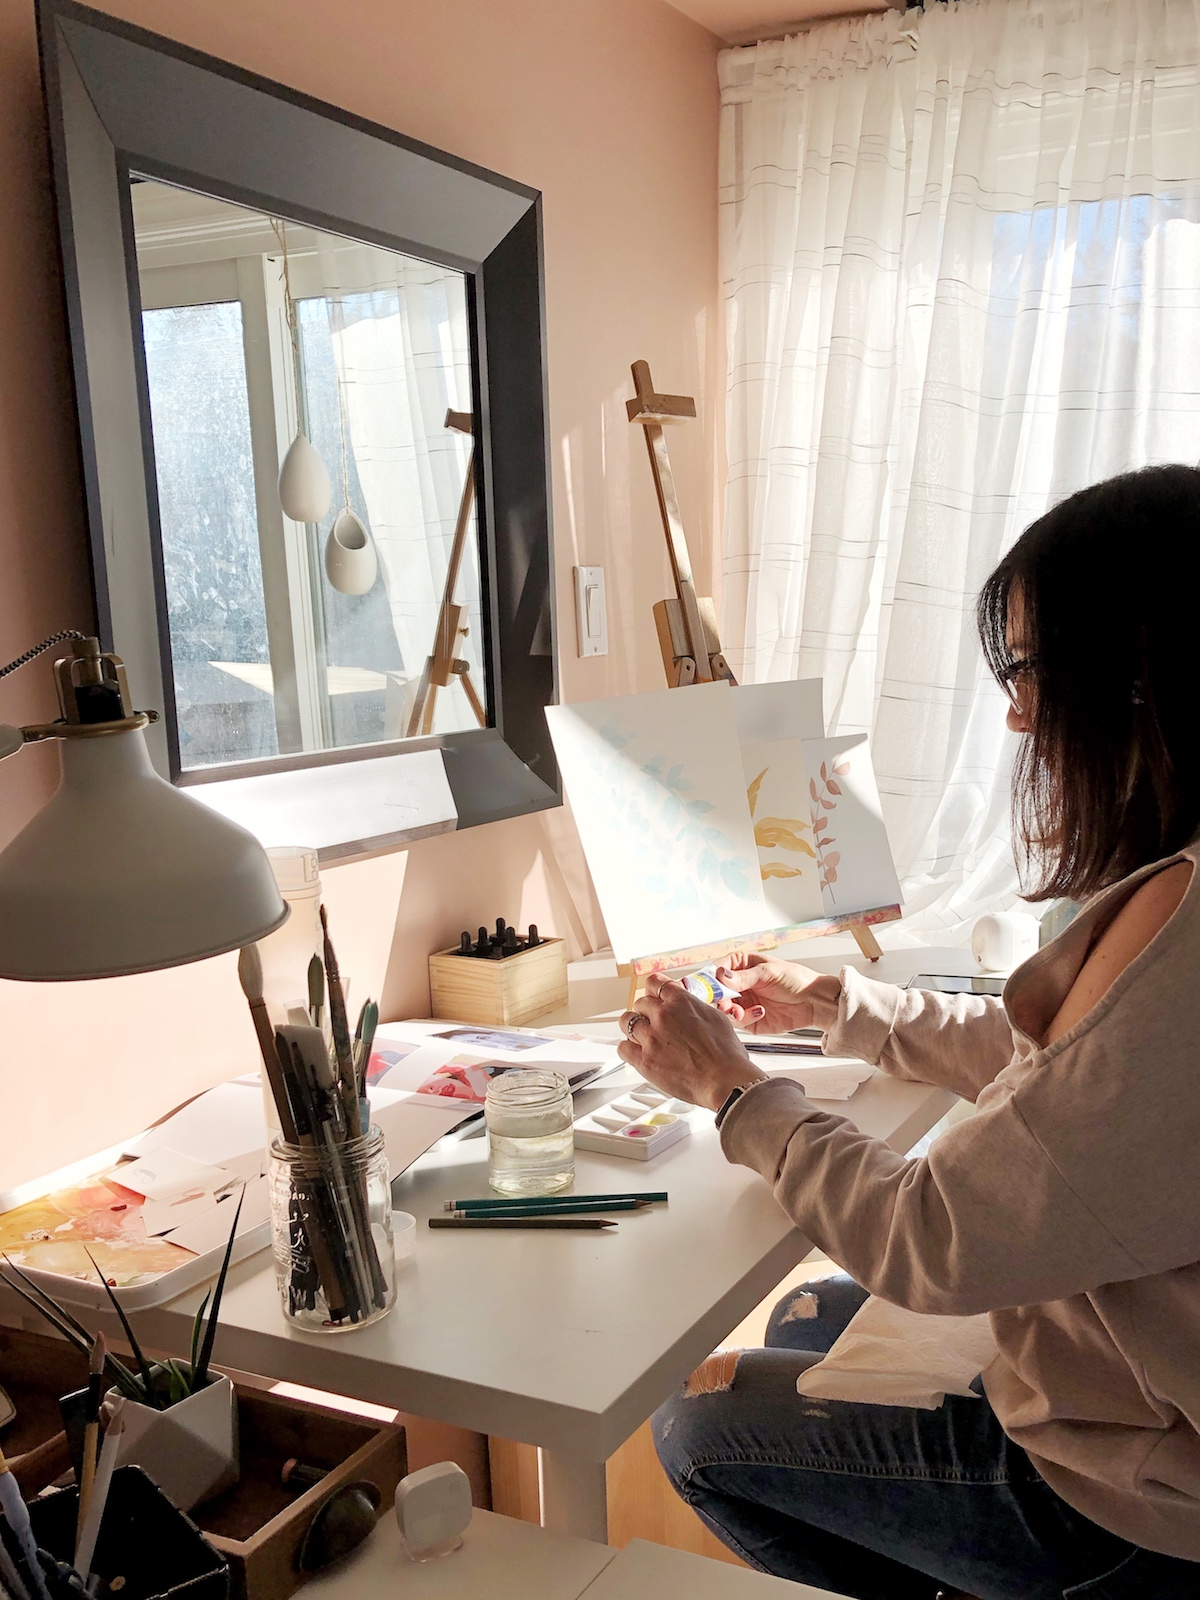 TIP 6 Wake up 30 minutes earlier 2-3 times a week to make art, practice lettering, or explore your creativity